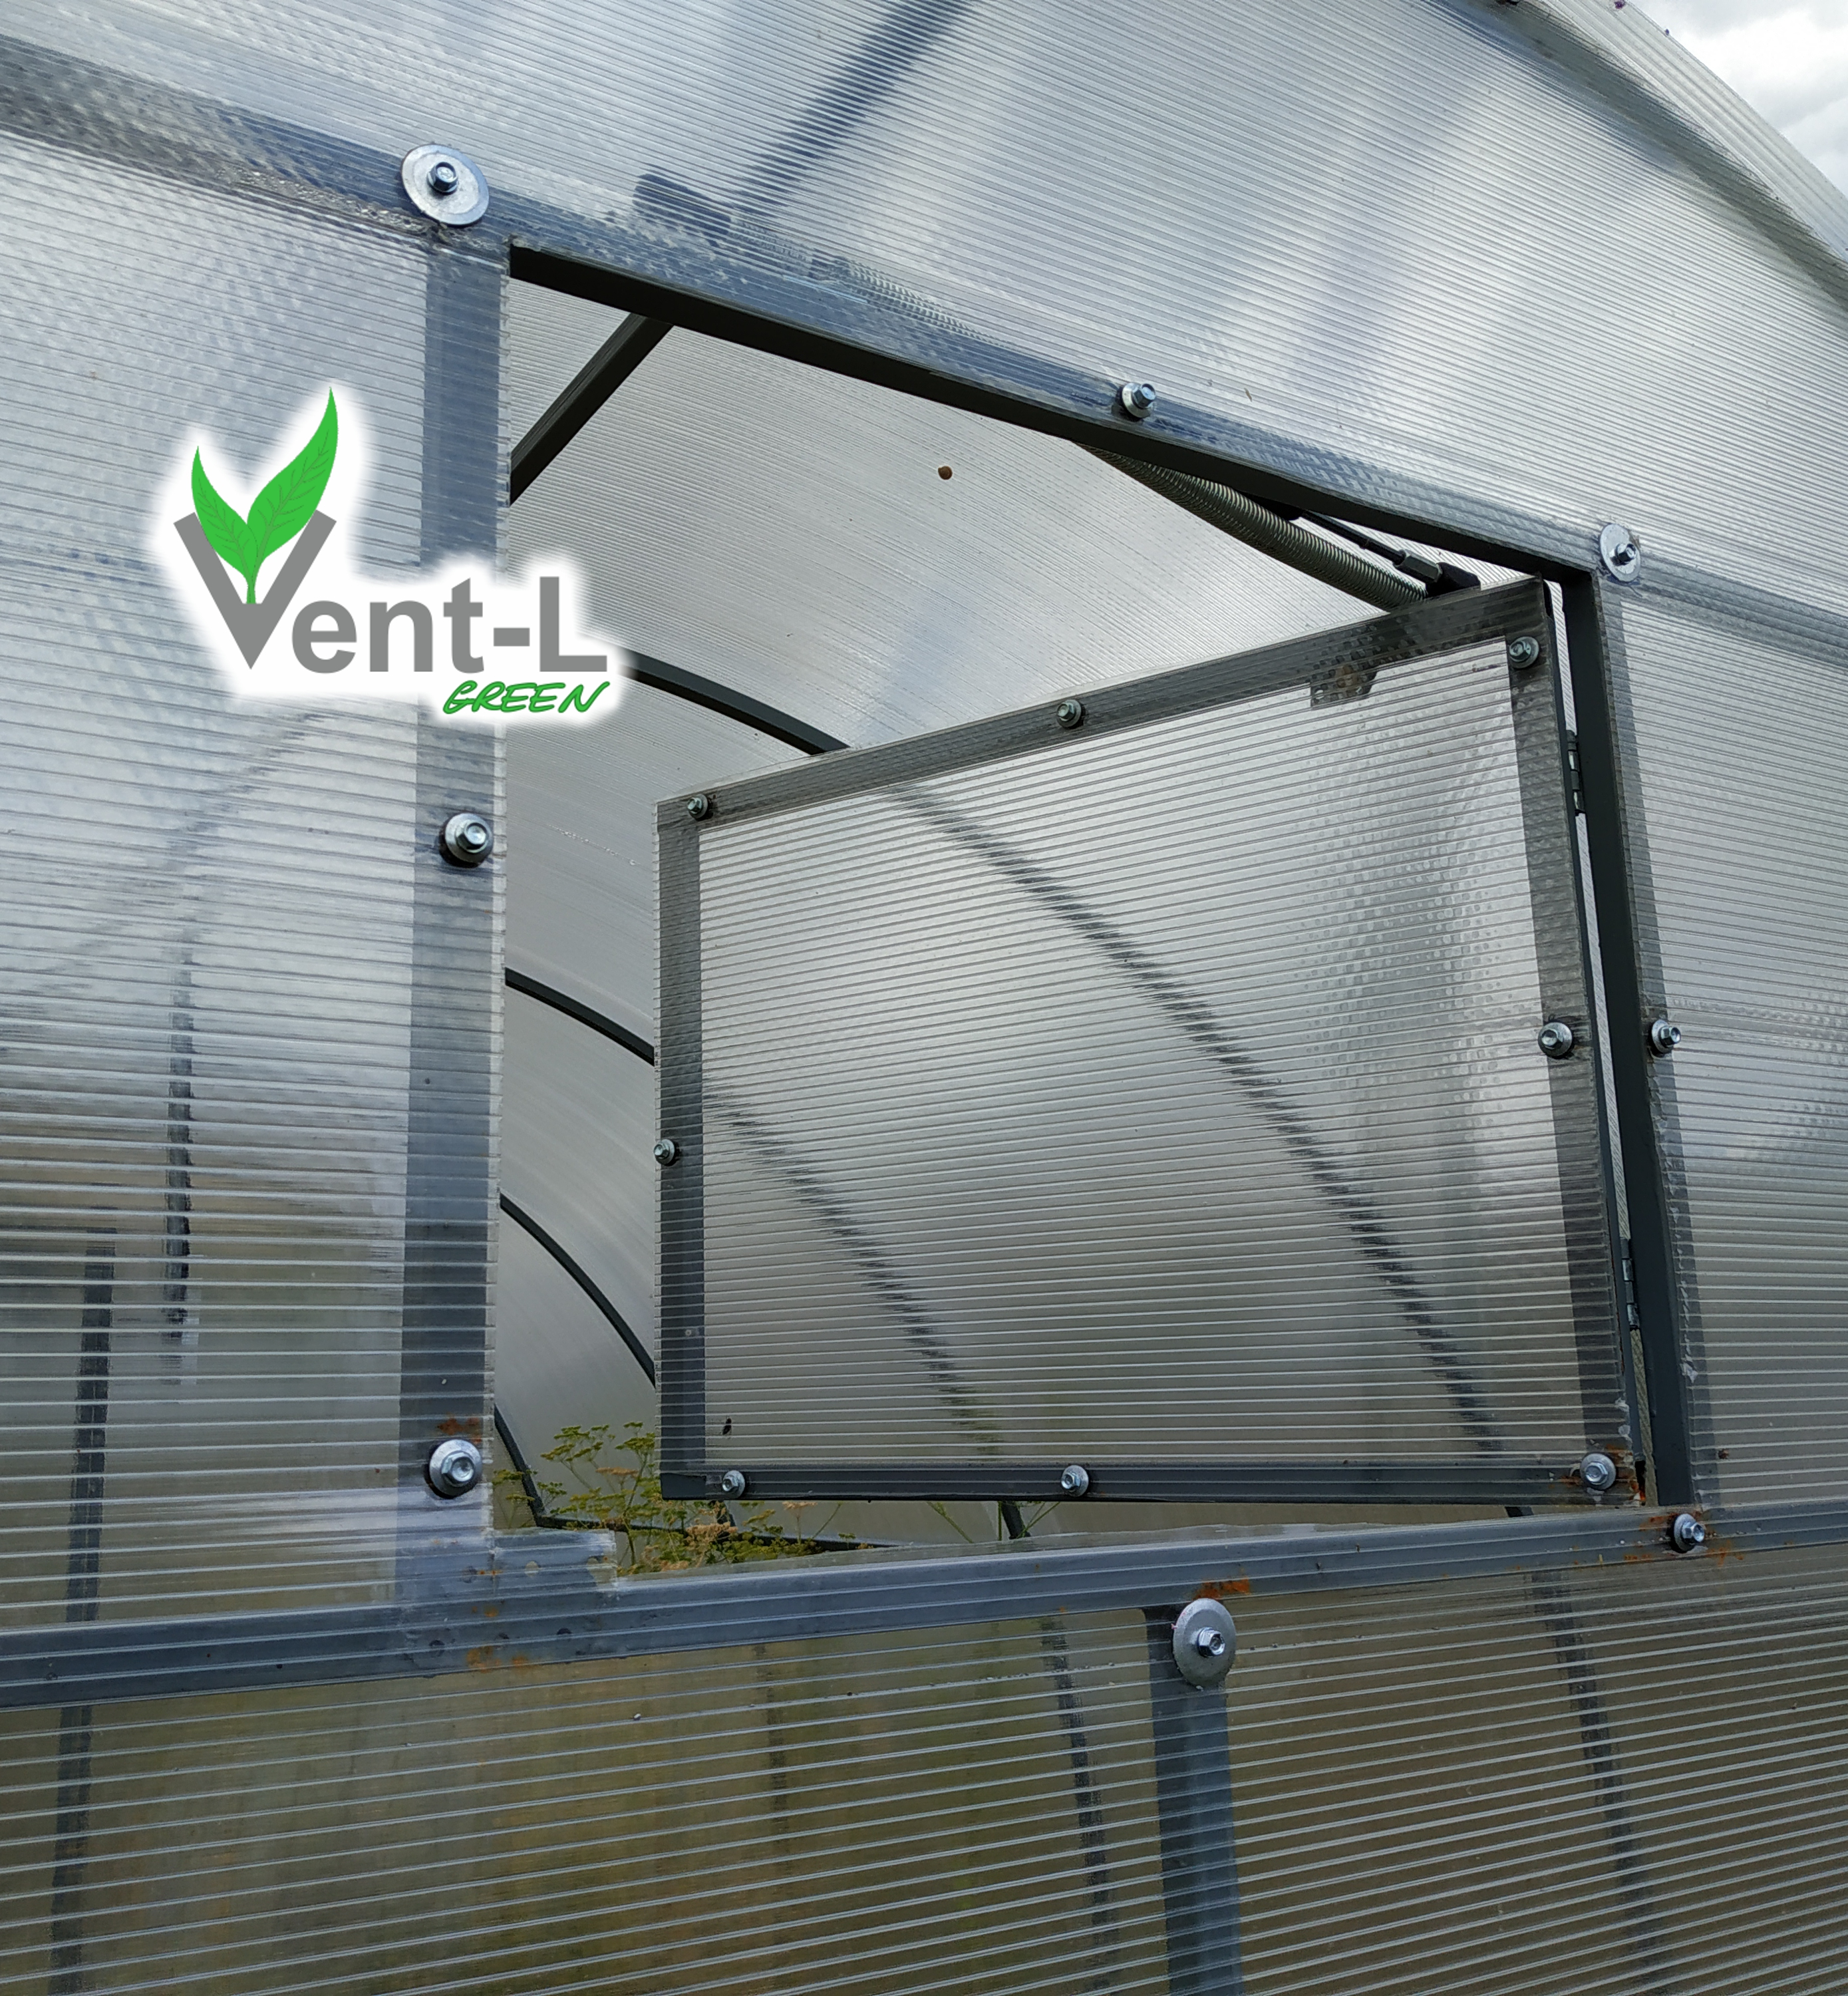 Automatic Vent opener Vent-L N02 opening temperatu of greenhouse load up to 60kg(132lb) for window/doors, re 24-32°C(75-90°F), openable surface area up to 1 m2 (11 ft2)